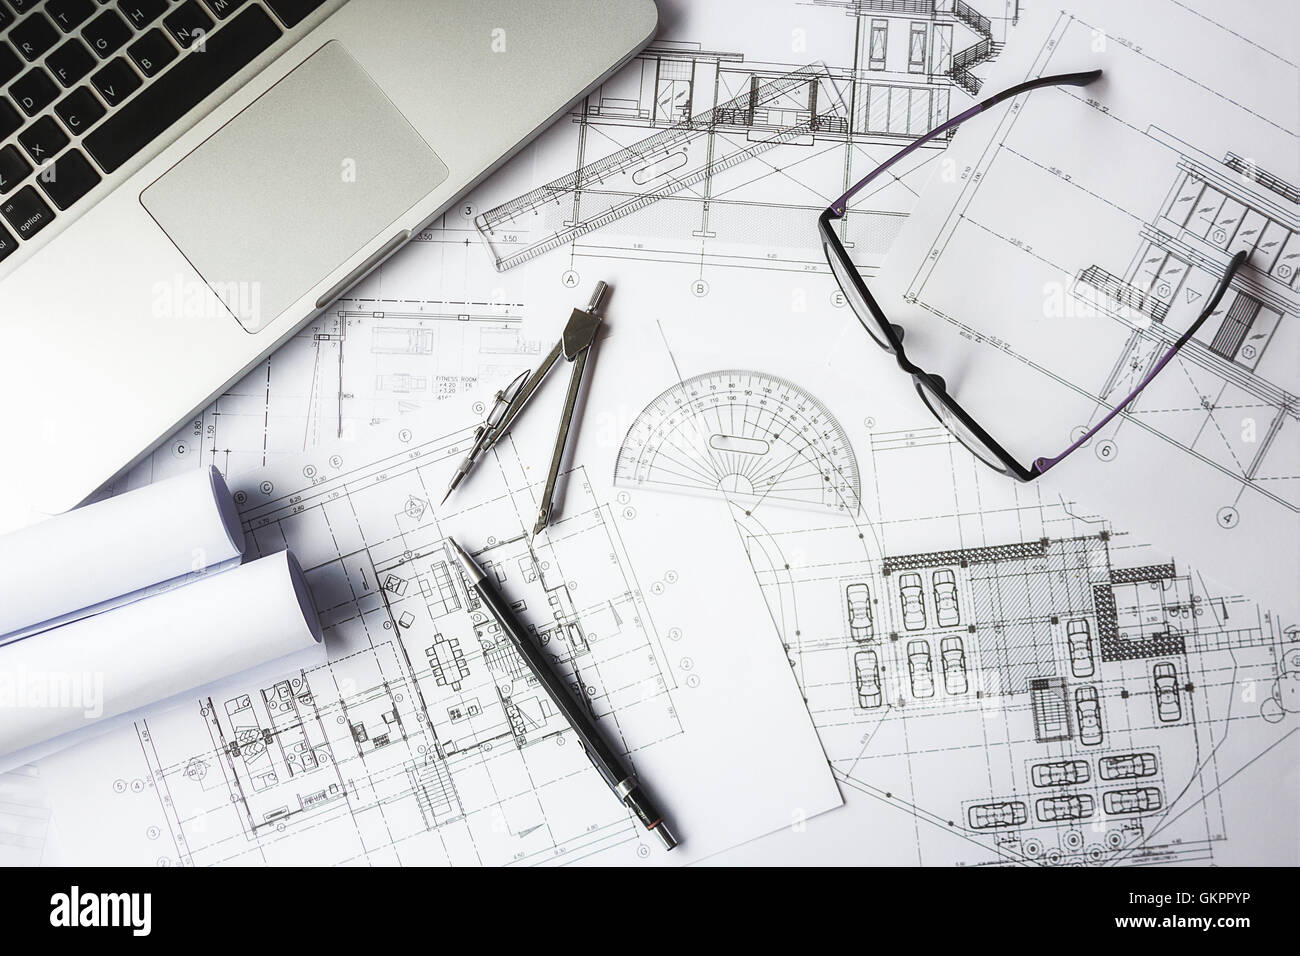 Architect architecture blueprint business businessman candid architect architecture blueprint business businessman candid casual coffee malvernweather